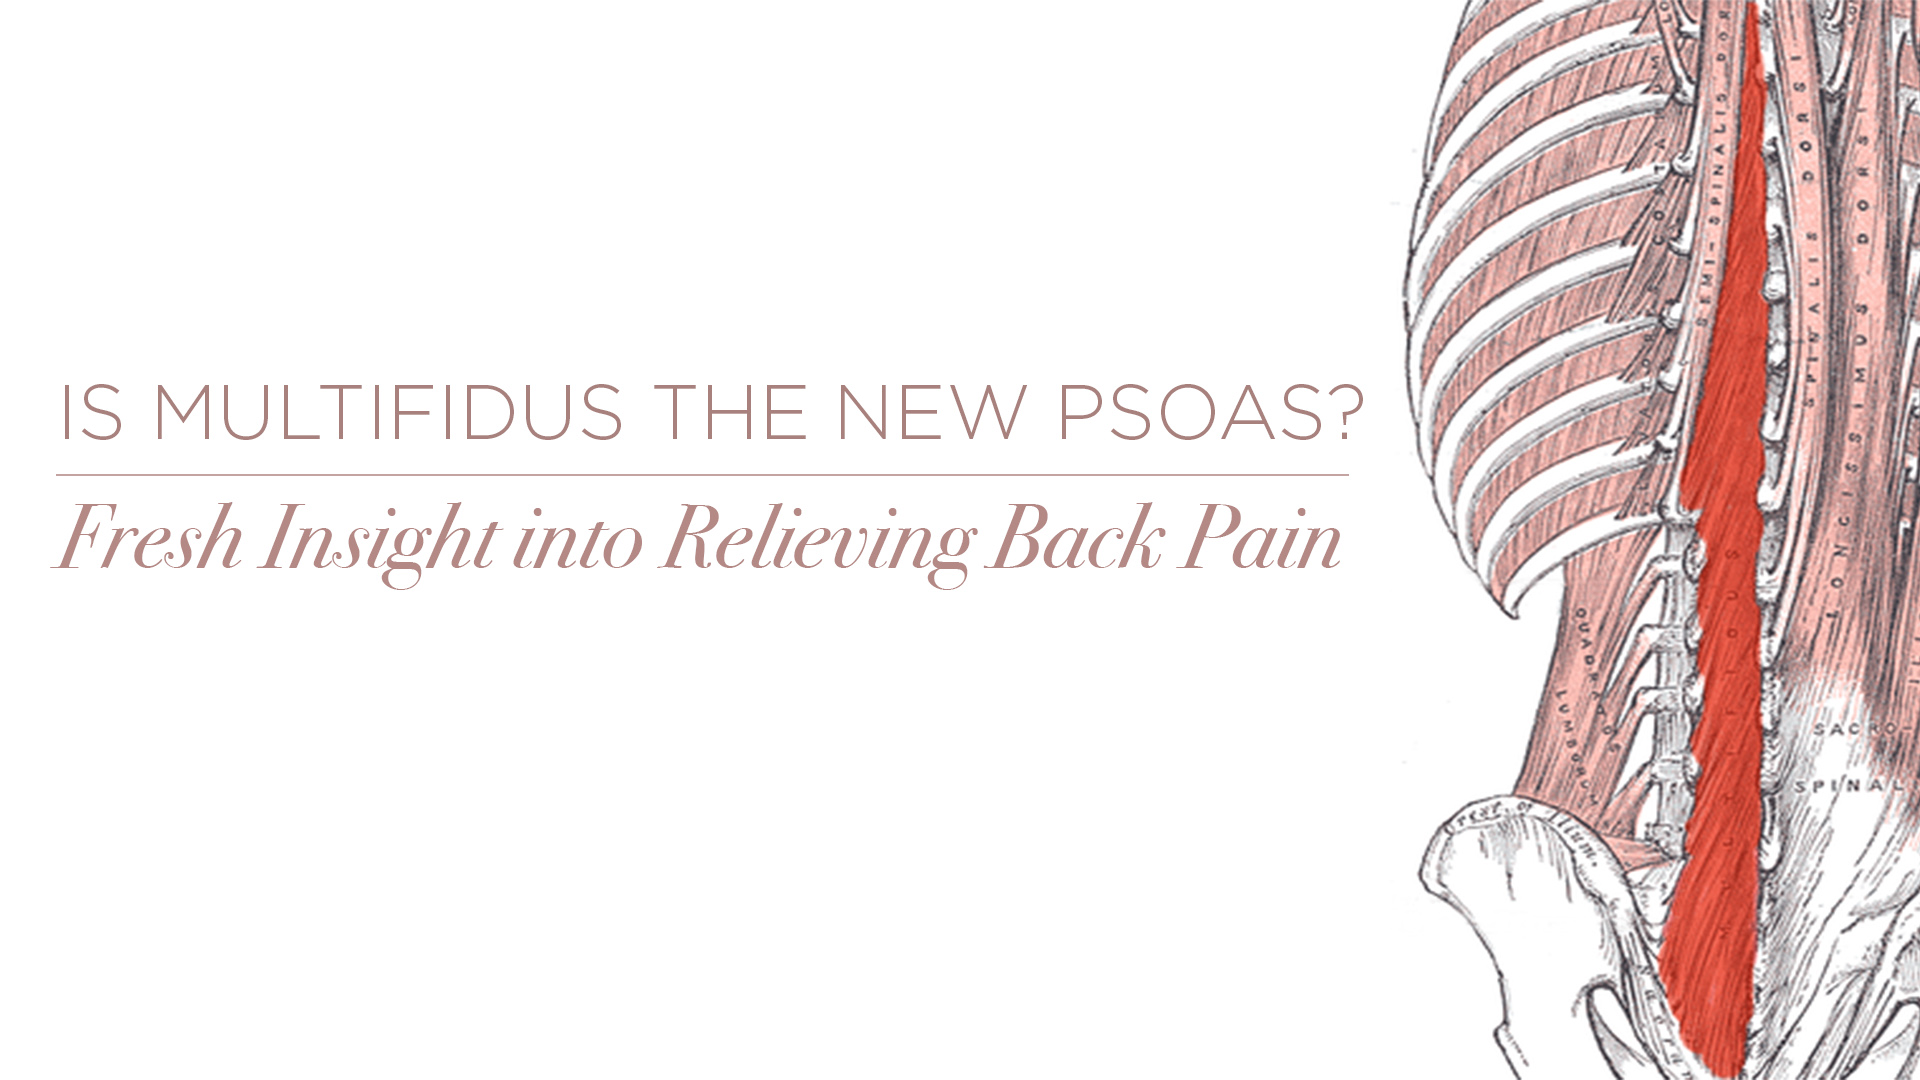 Is Multifidus the New Psoas? Fresh Insight into Relieving Back Pain